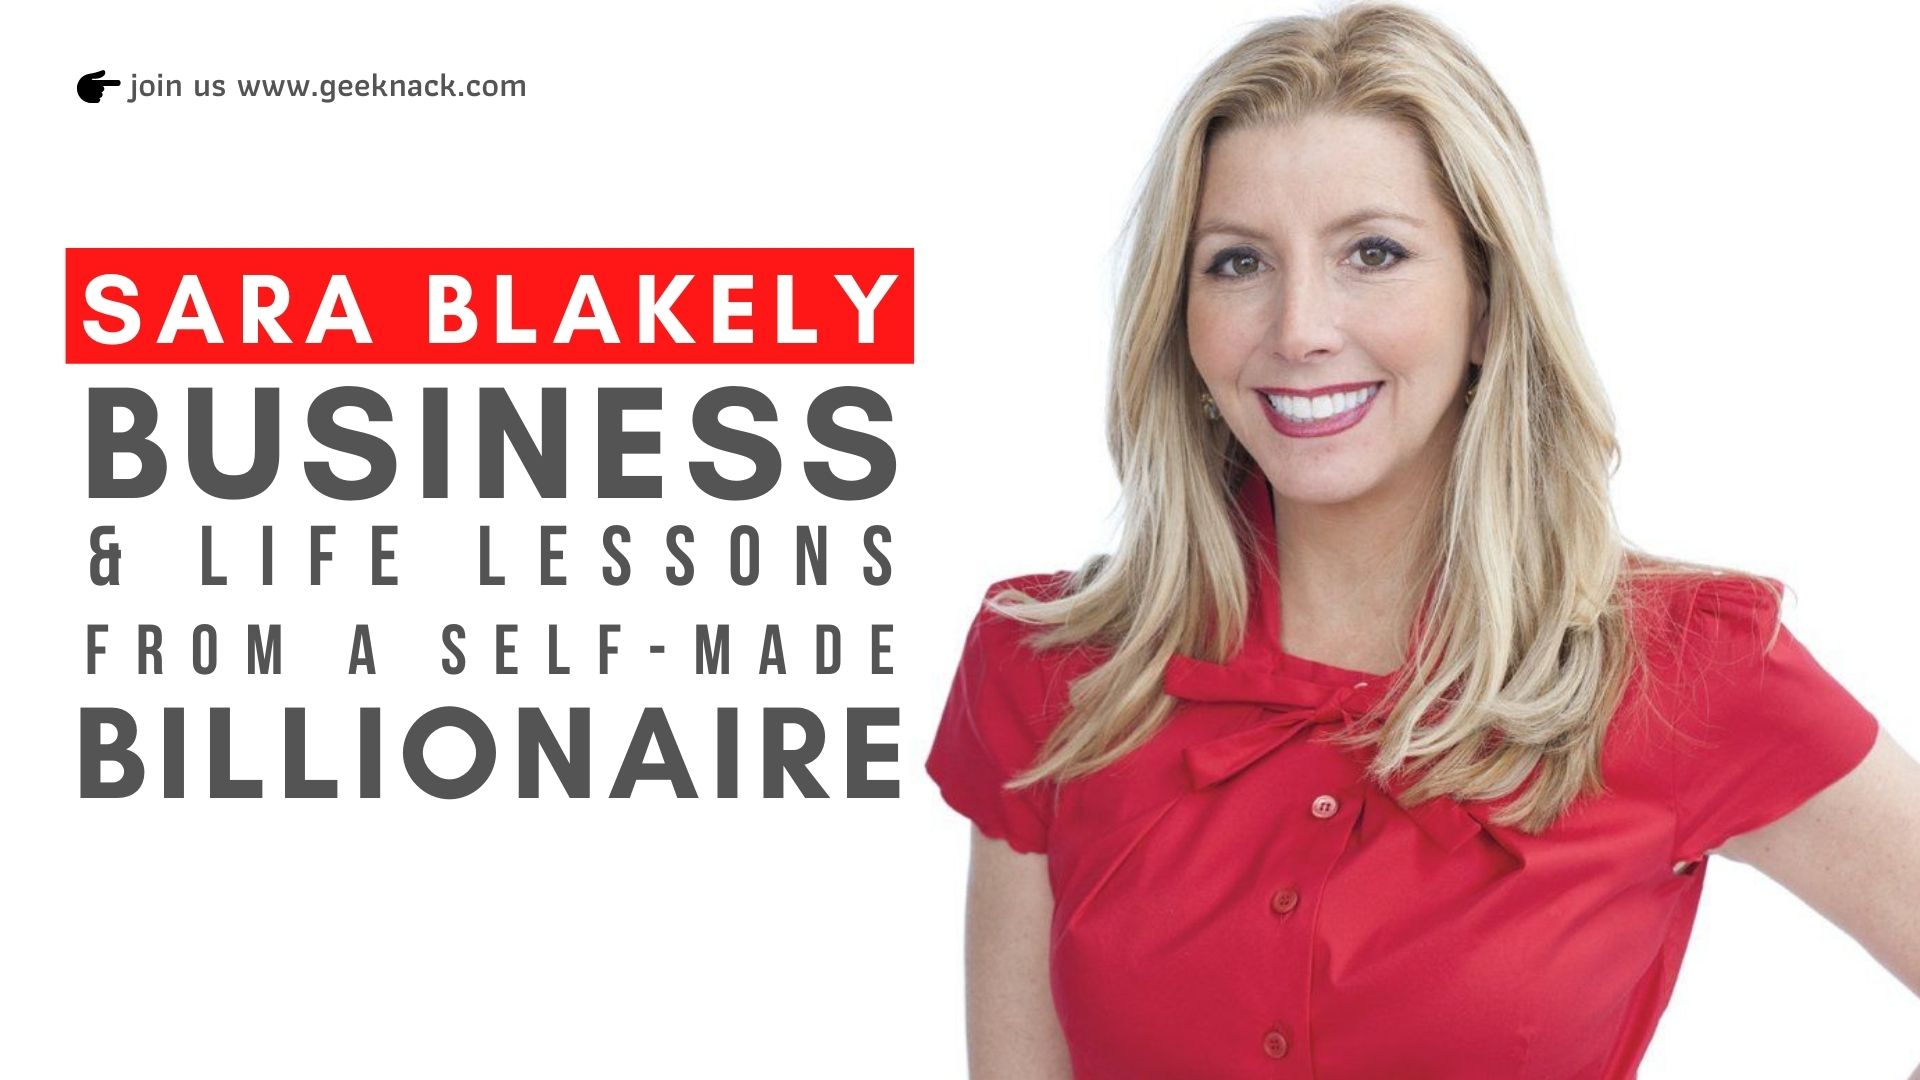 Sara Blakely Business & Life Lessons From a Self-Made Billionaire